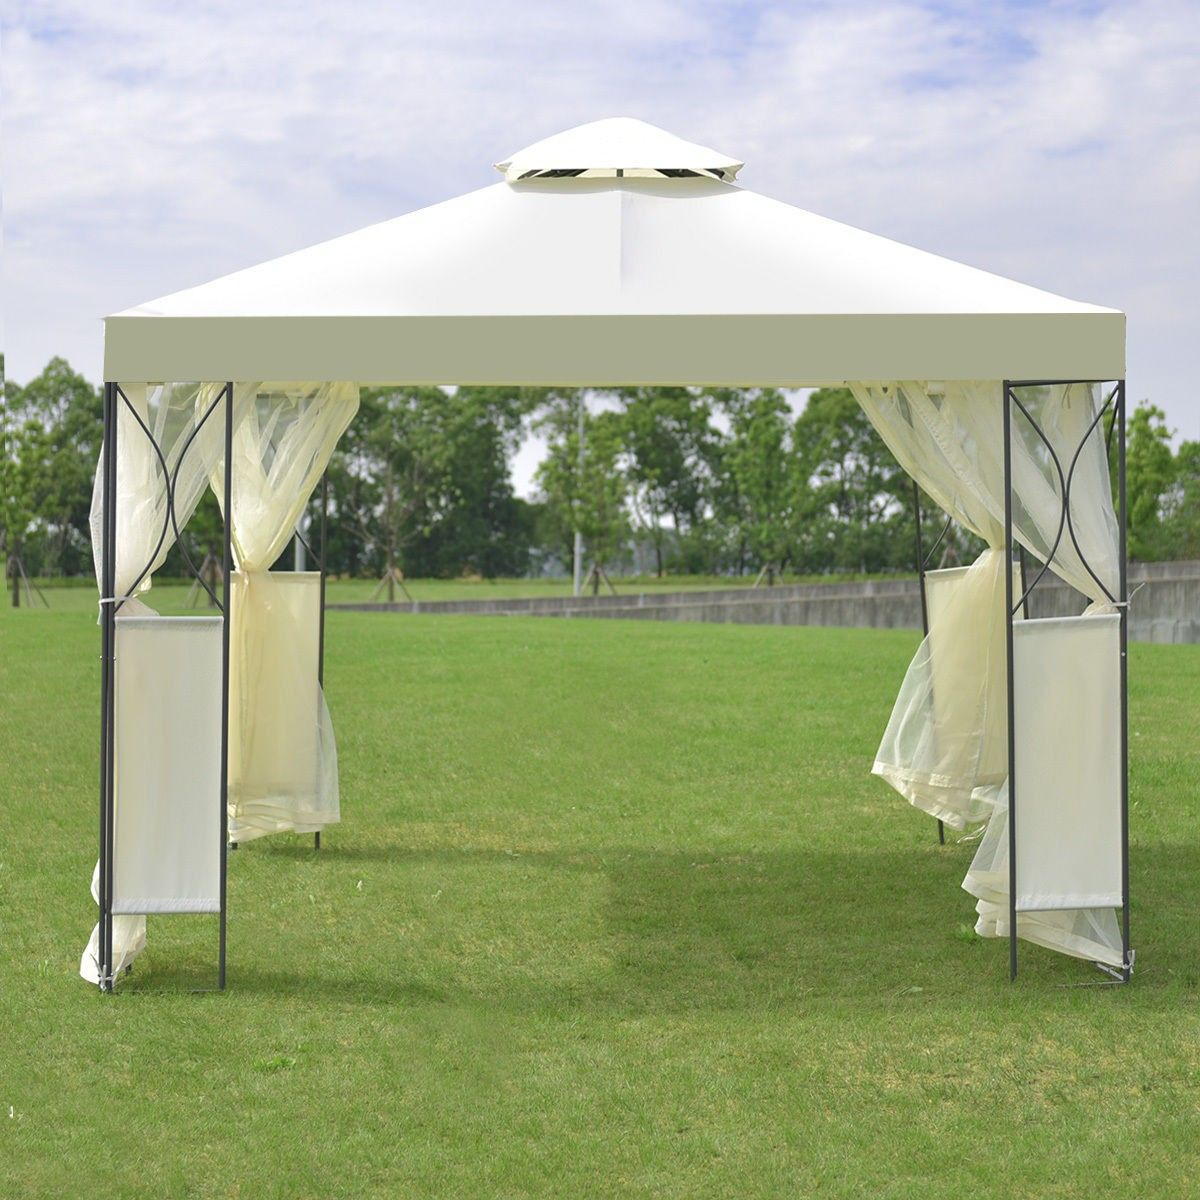 2 Tier 10 X 10 Patio Steel Gazebo Canopy Shelter Steel Gazebo Gazebo Canopy Canopy Tent